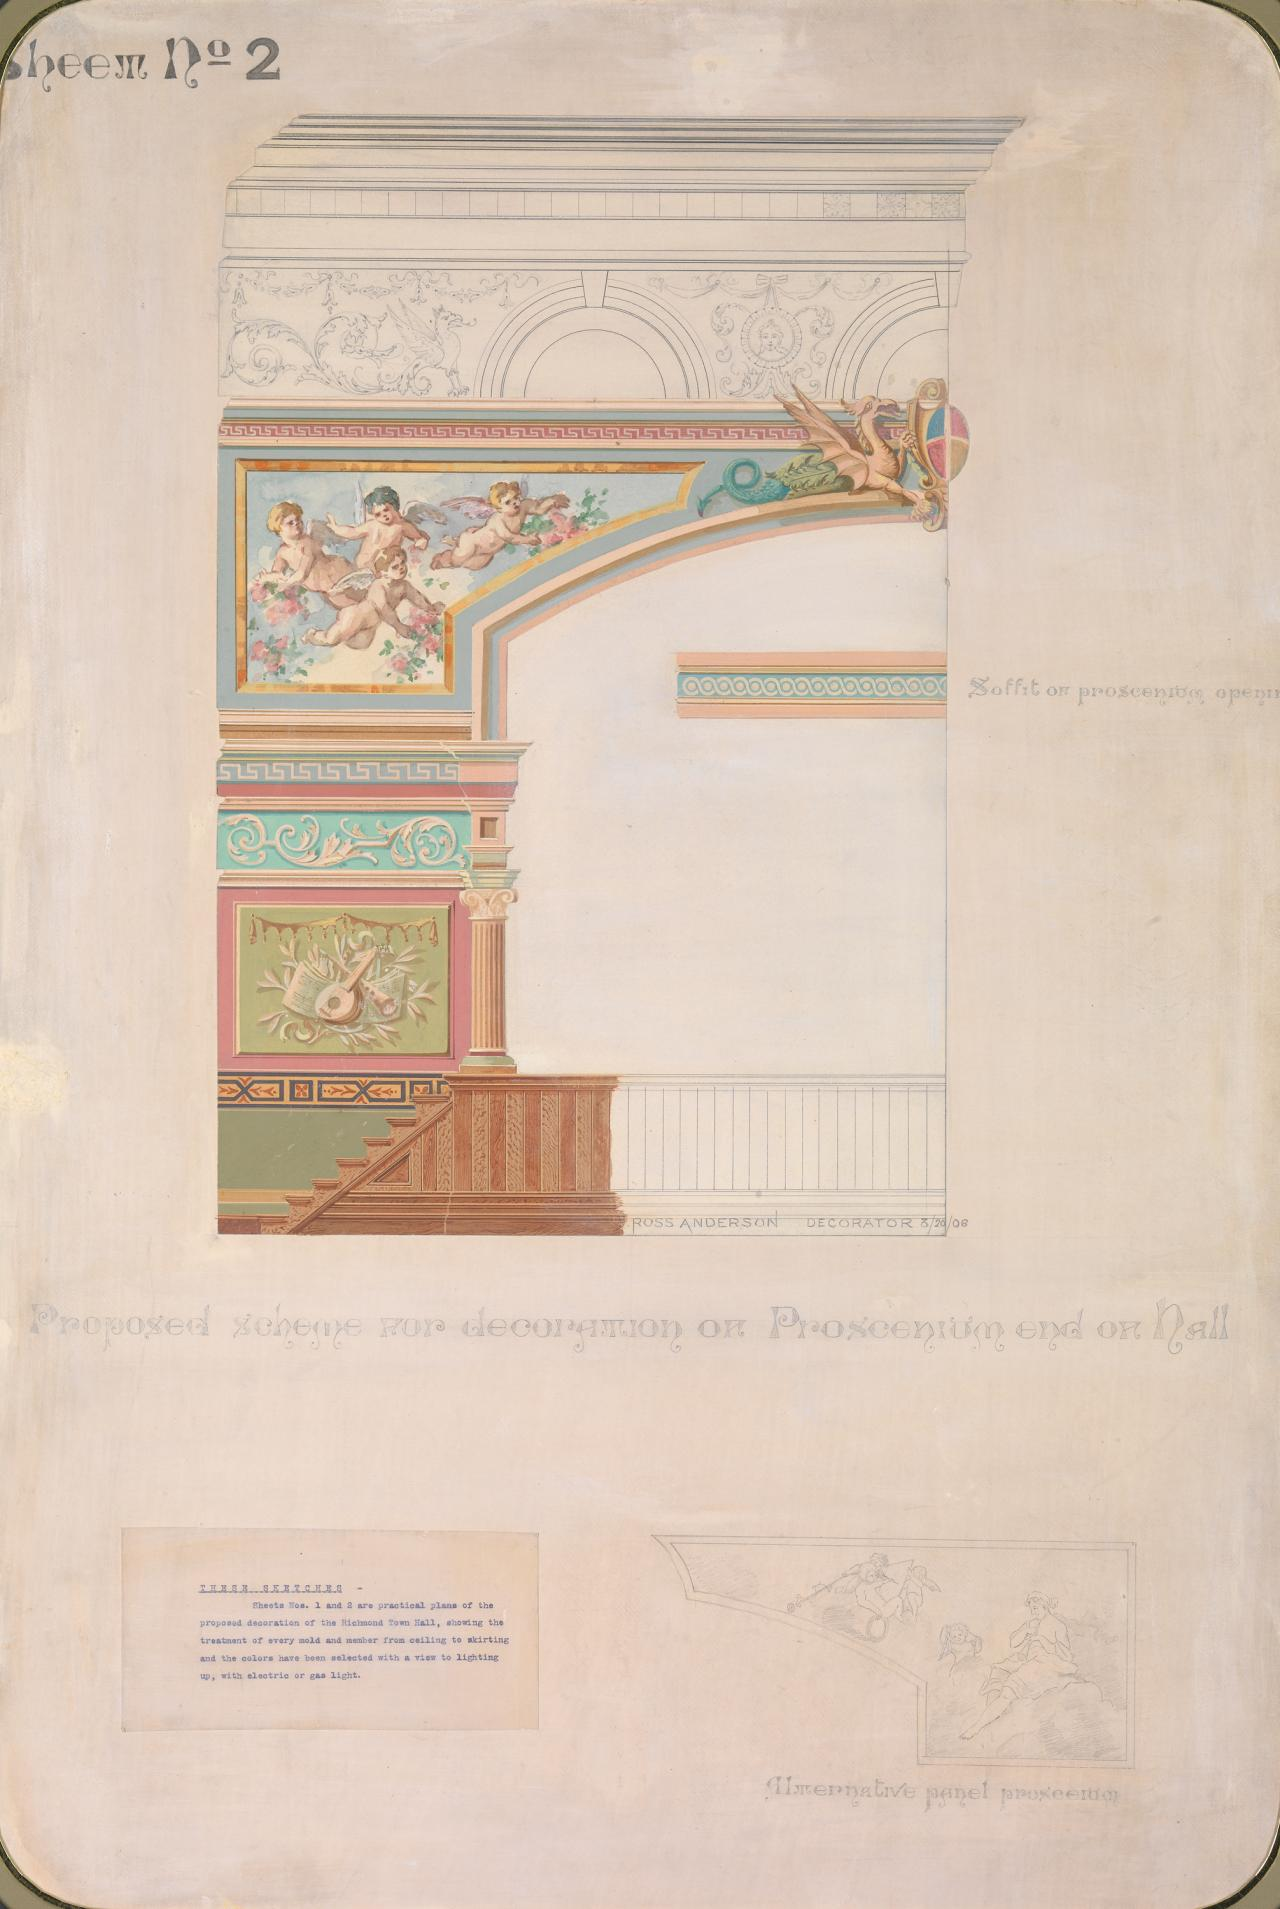 Proposed scheme for decoration of Proscenium end of hall, the Richmond Town Hall, sheet no. 2